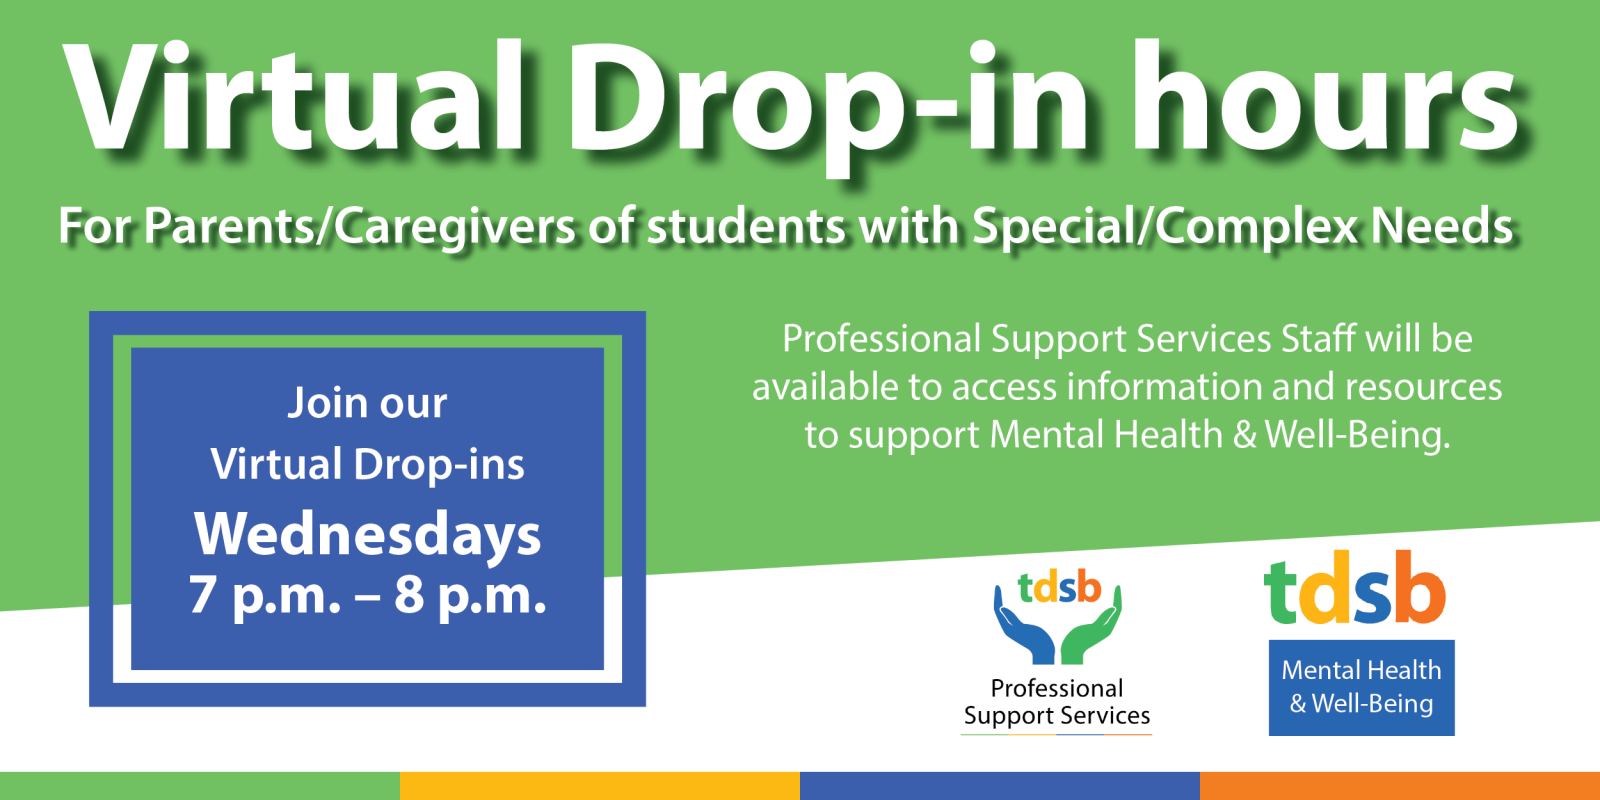 Virtual Office Hours for Parents/Caregivers with students with special education/complex needs